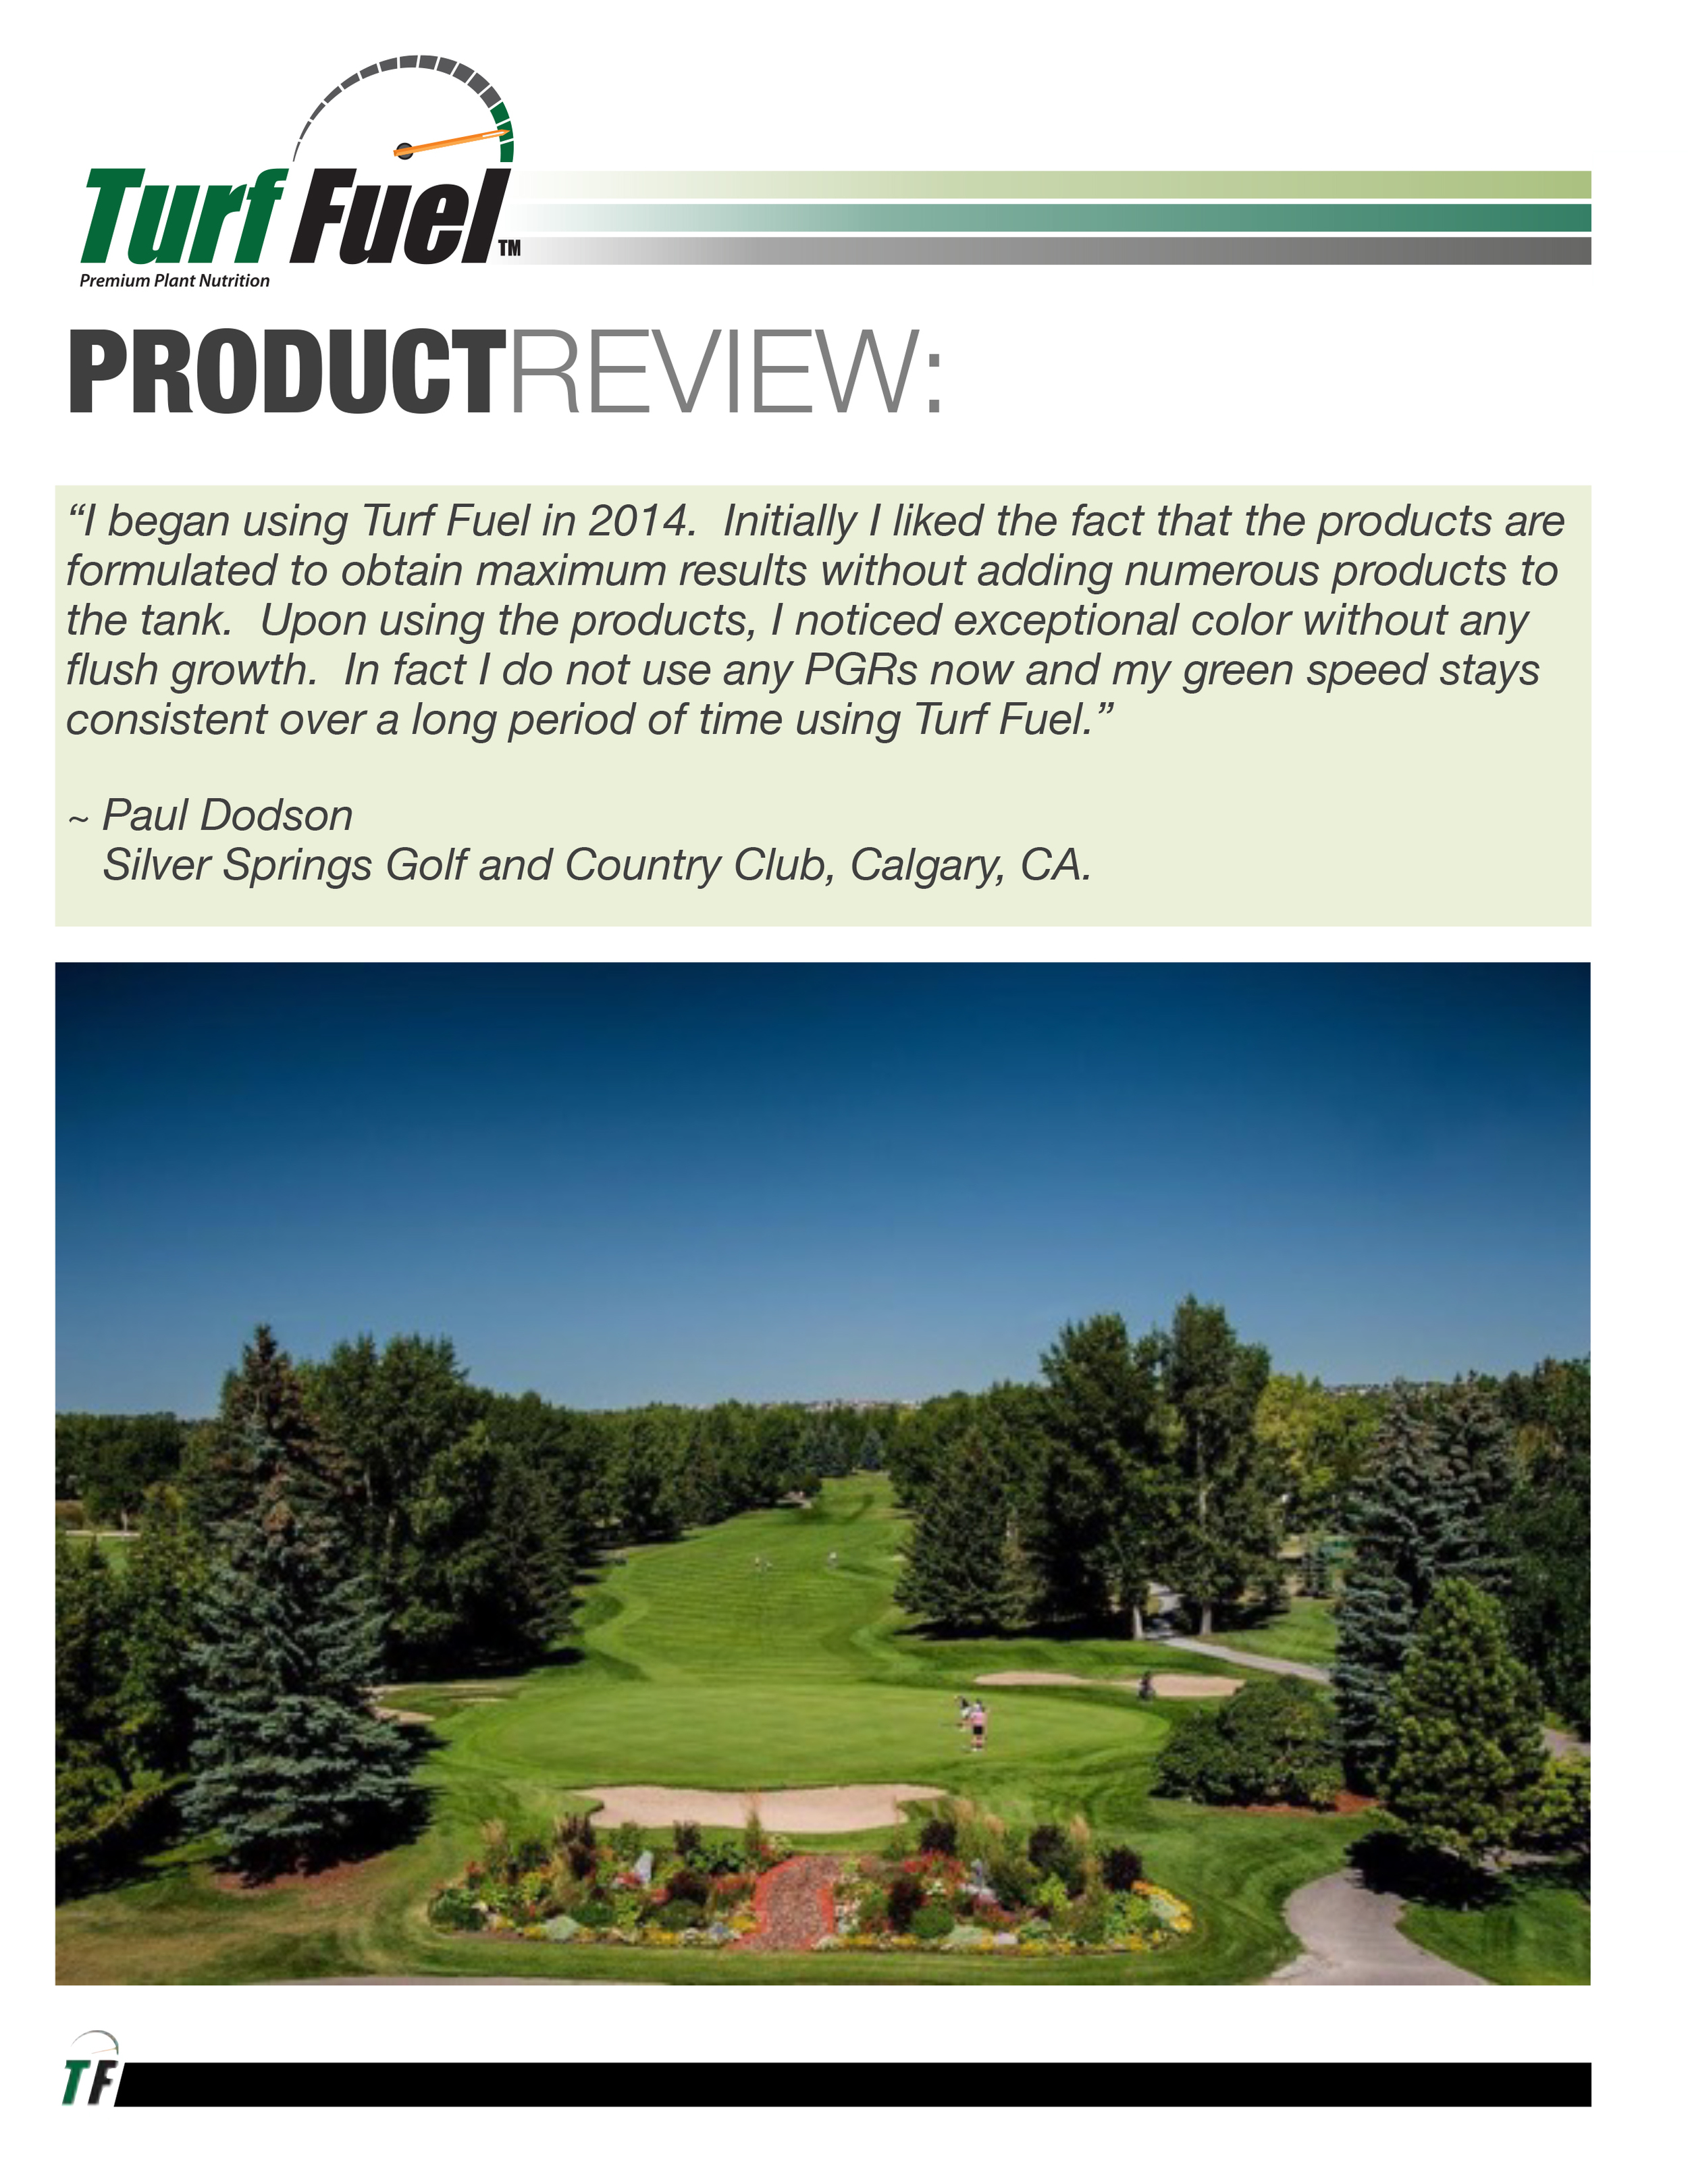 PRODUCT REVIEW Paul Dodson